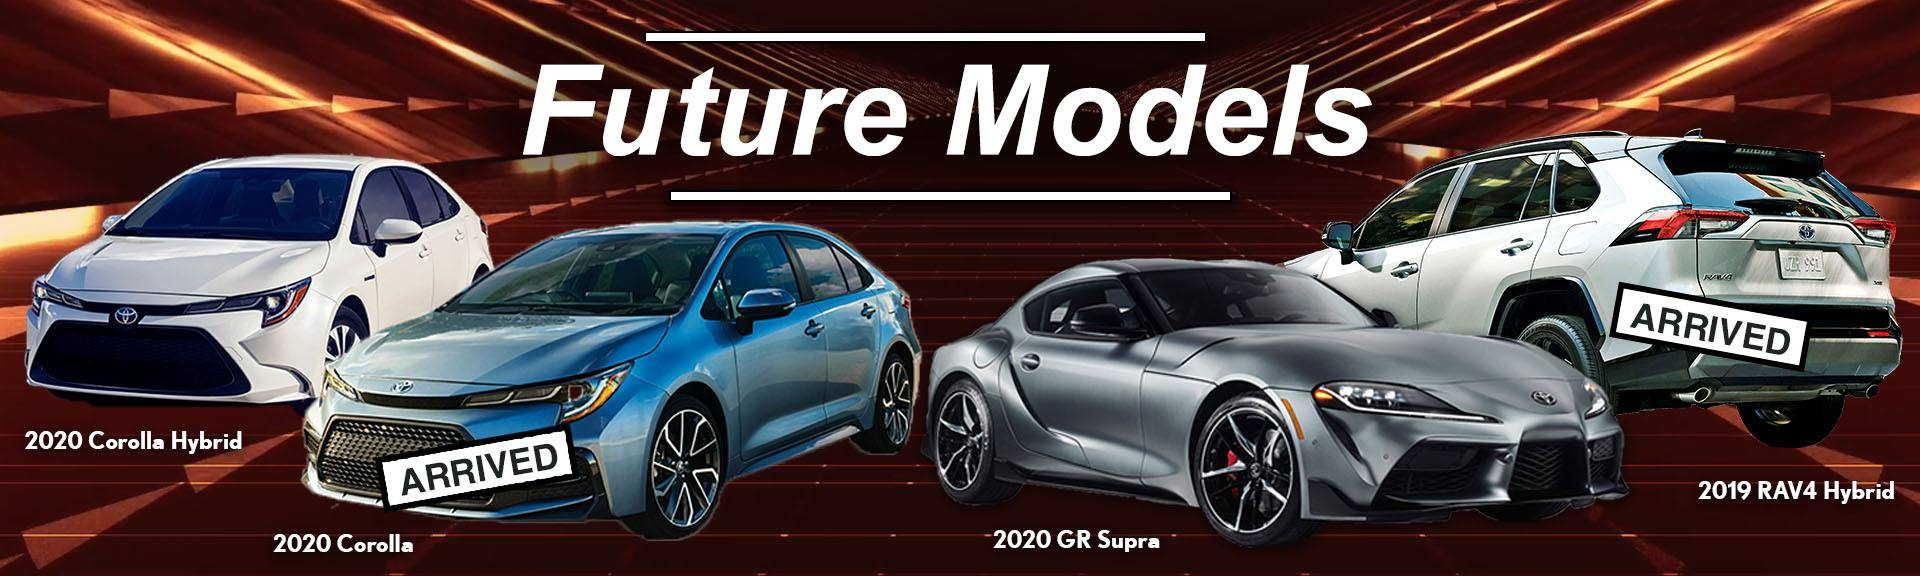 Future Toyota Models coming soon to Heffner Toyota.